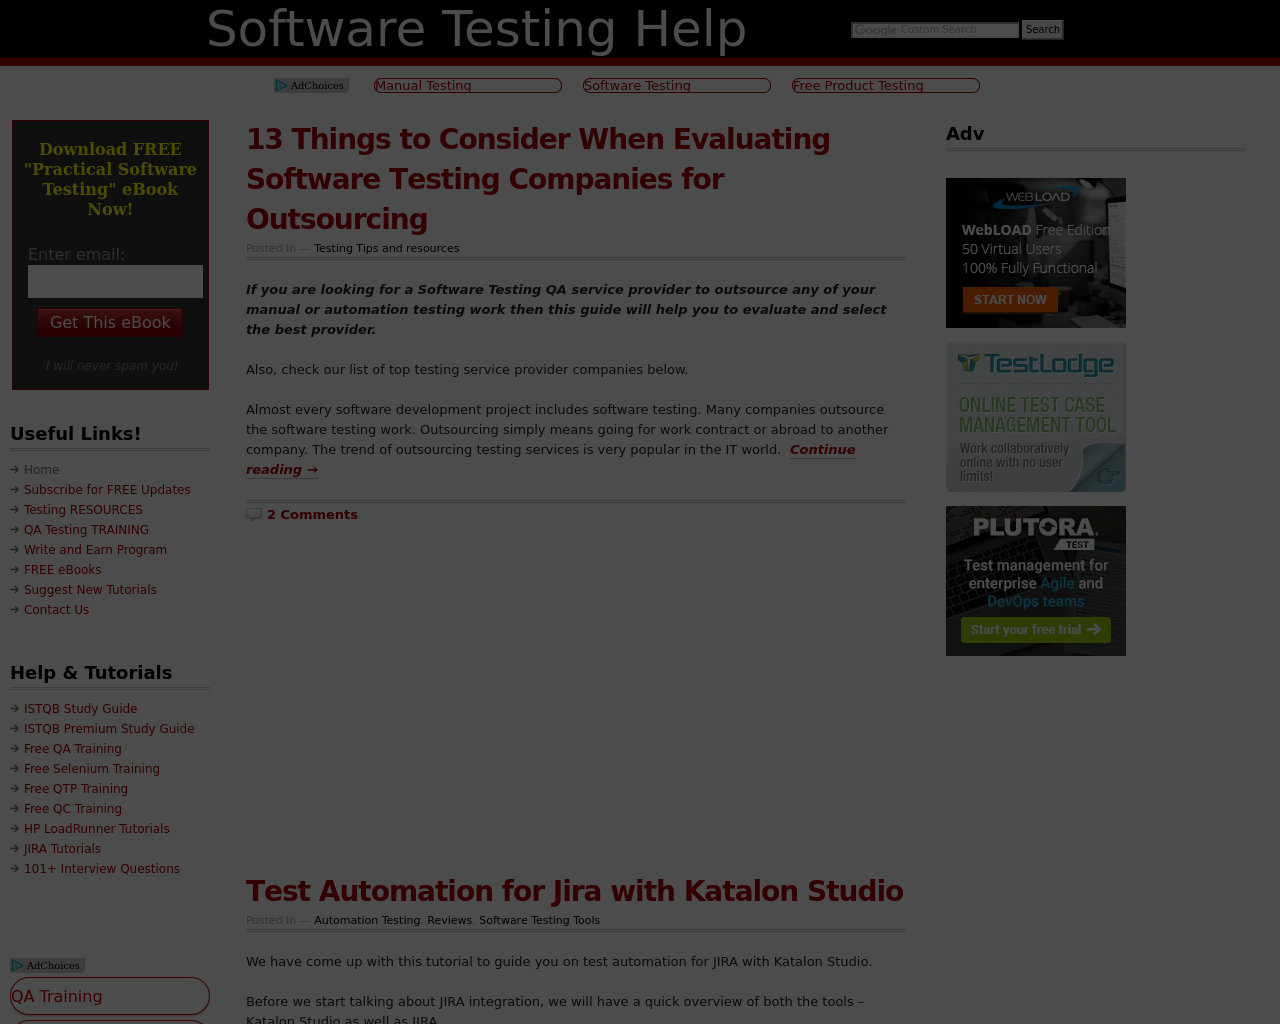 Software-Complete-Testing-Guide-Advertising-Reviews-Pricing